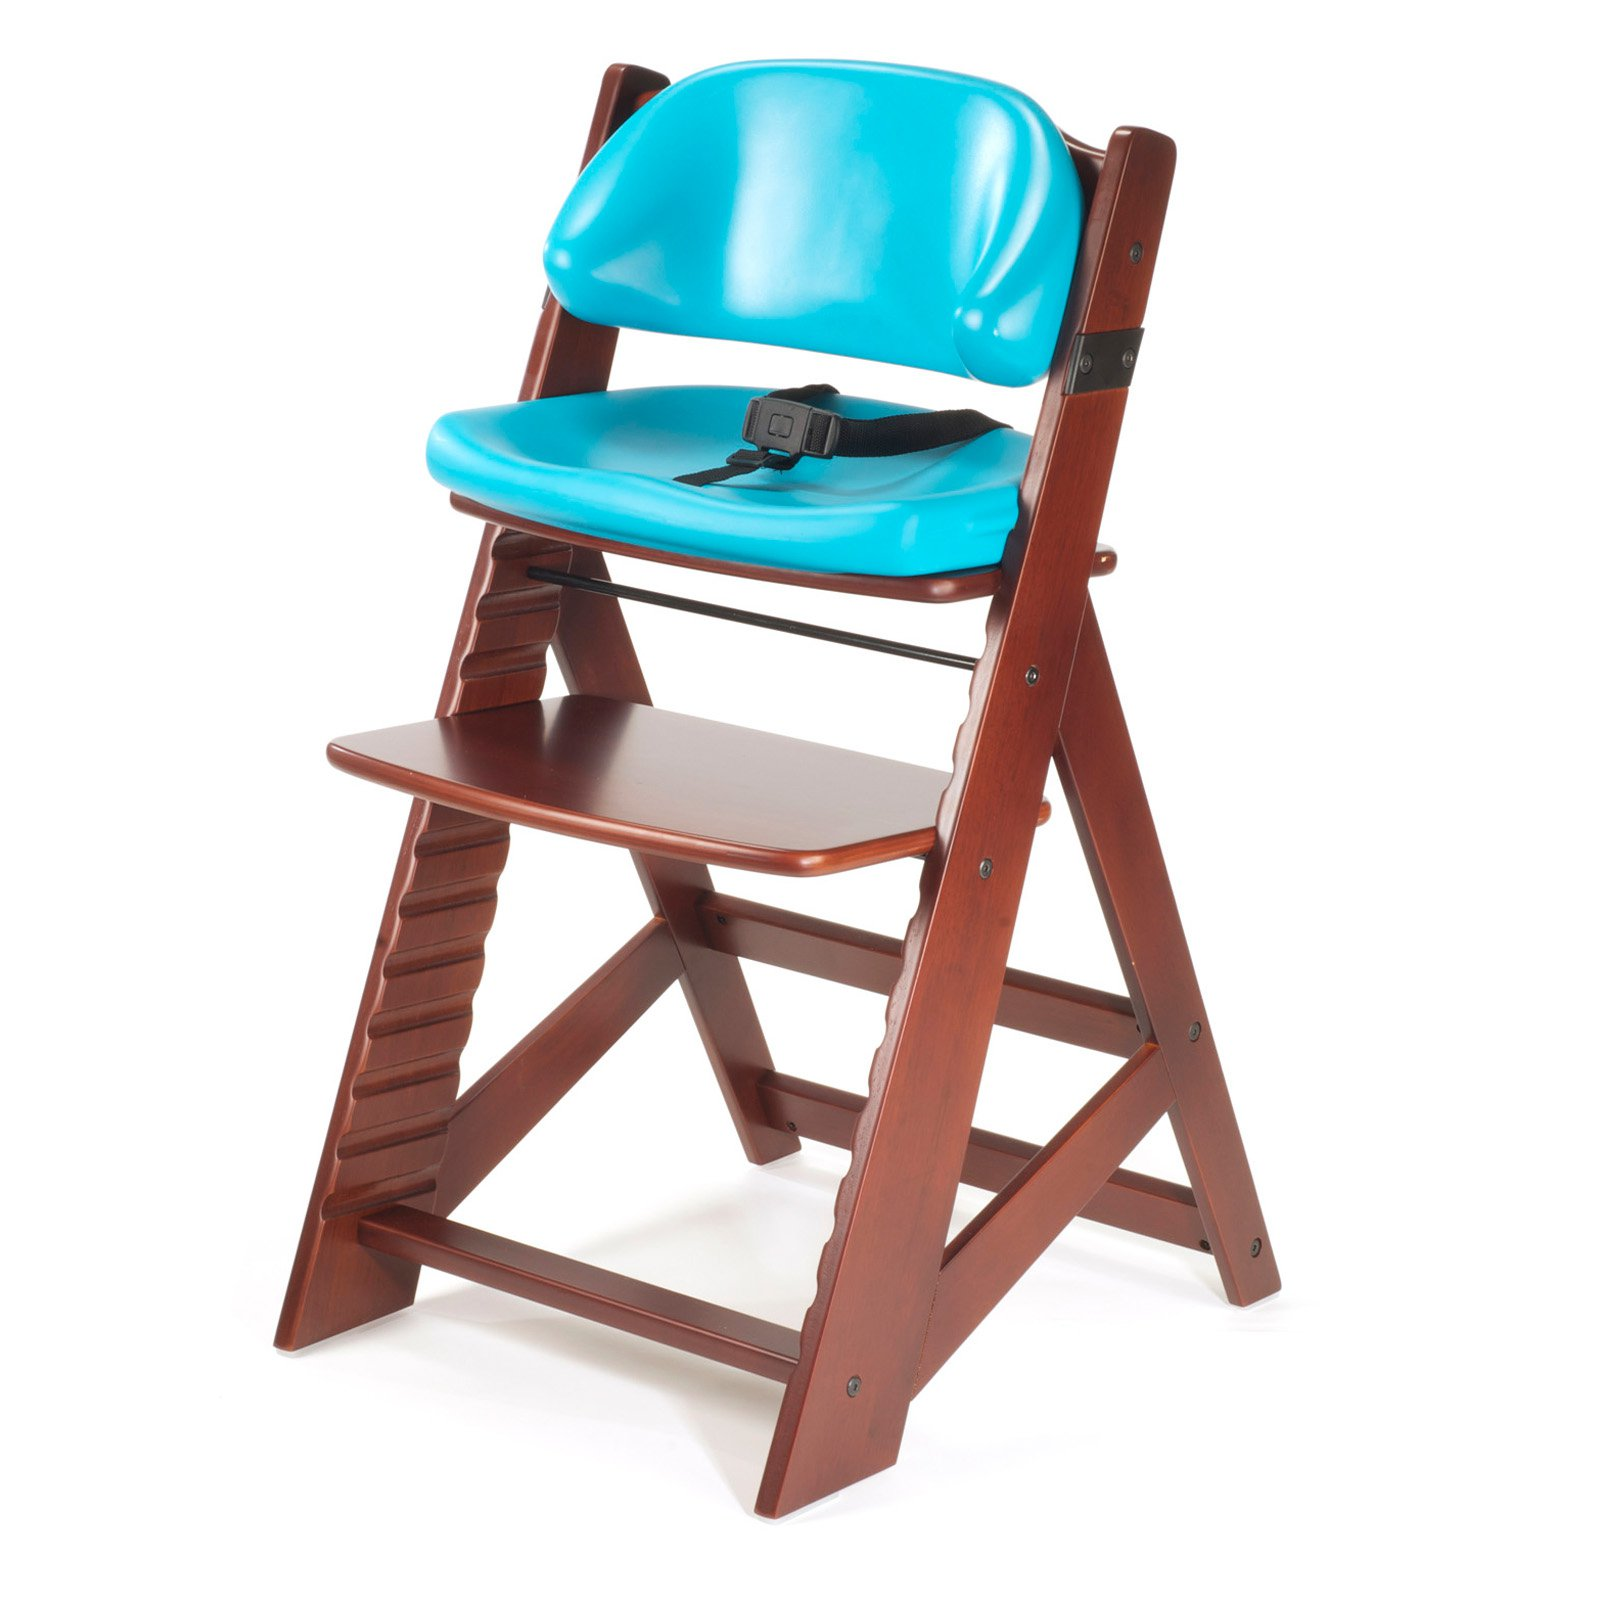 Keekaroo Height Right Kids Chair Mahogany with Aqua Comfort Cushions